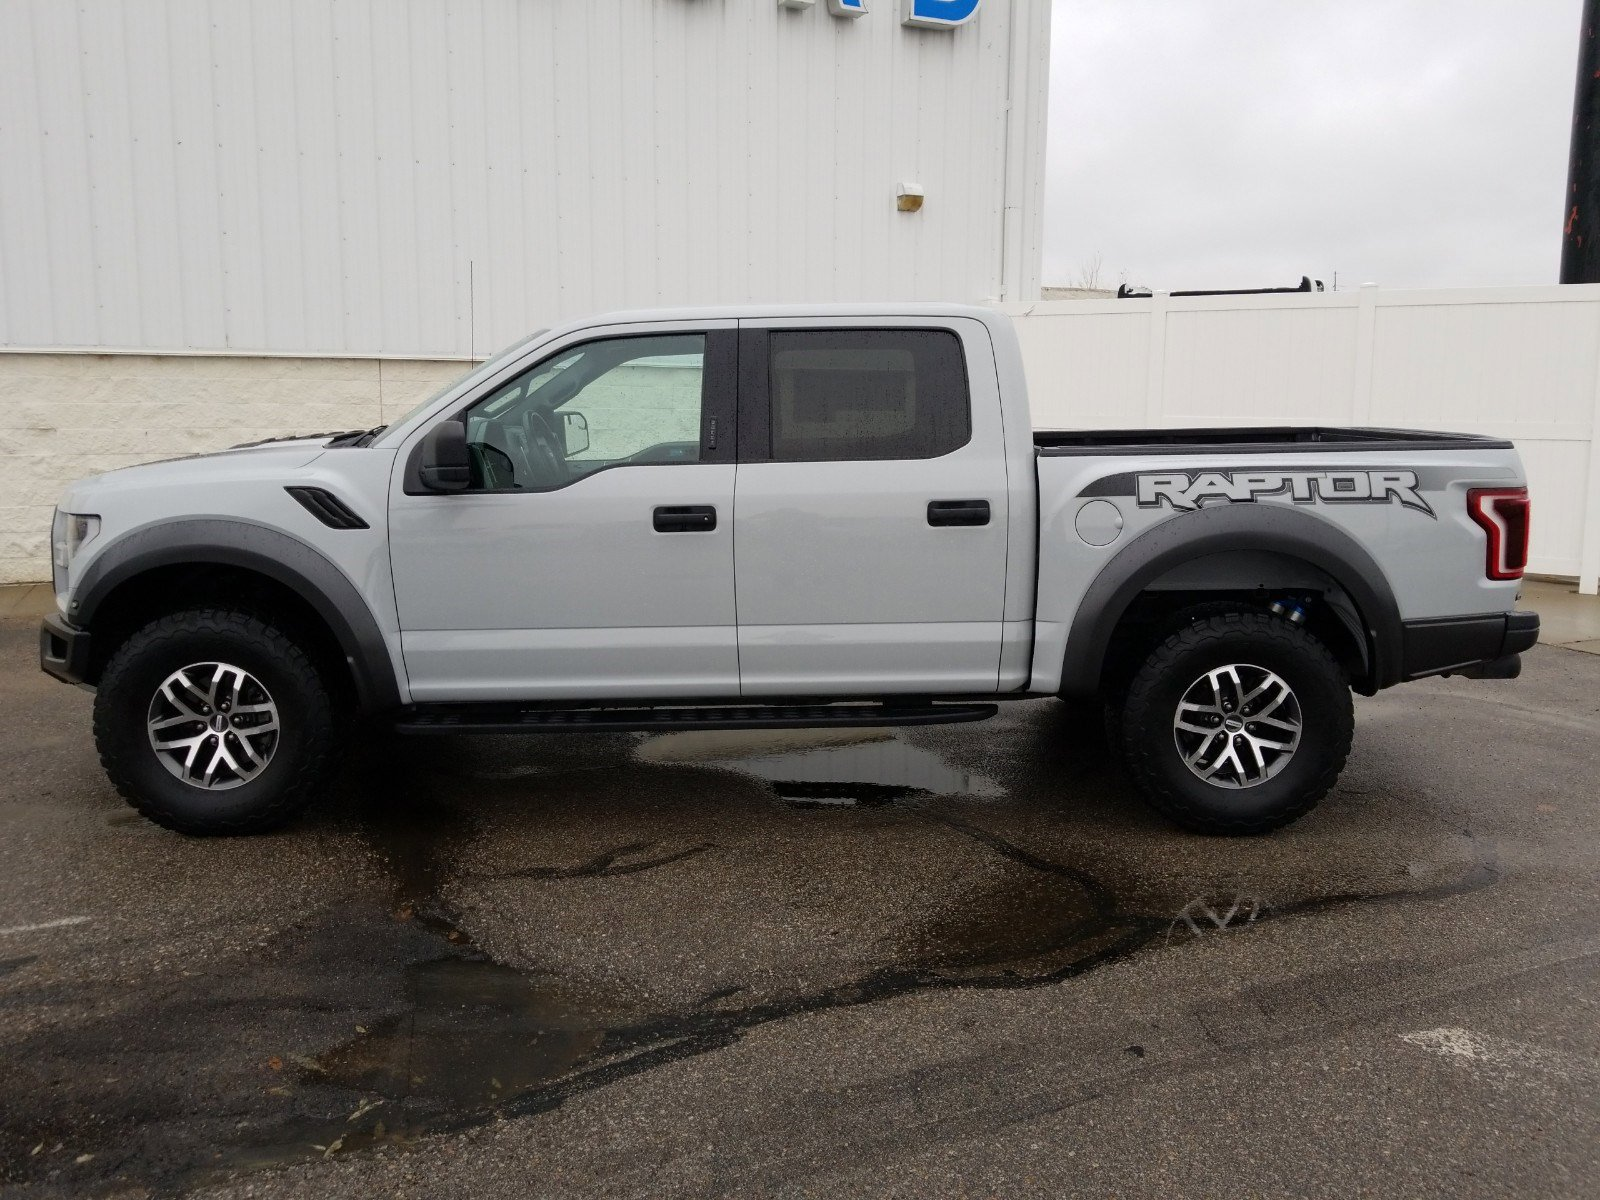 Used 2017 Ford F-150 Raptor Crew Cab Pickup for sale in Lincoln NE